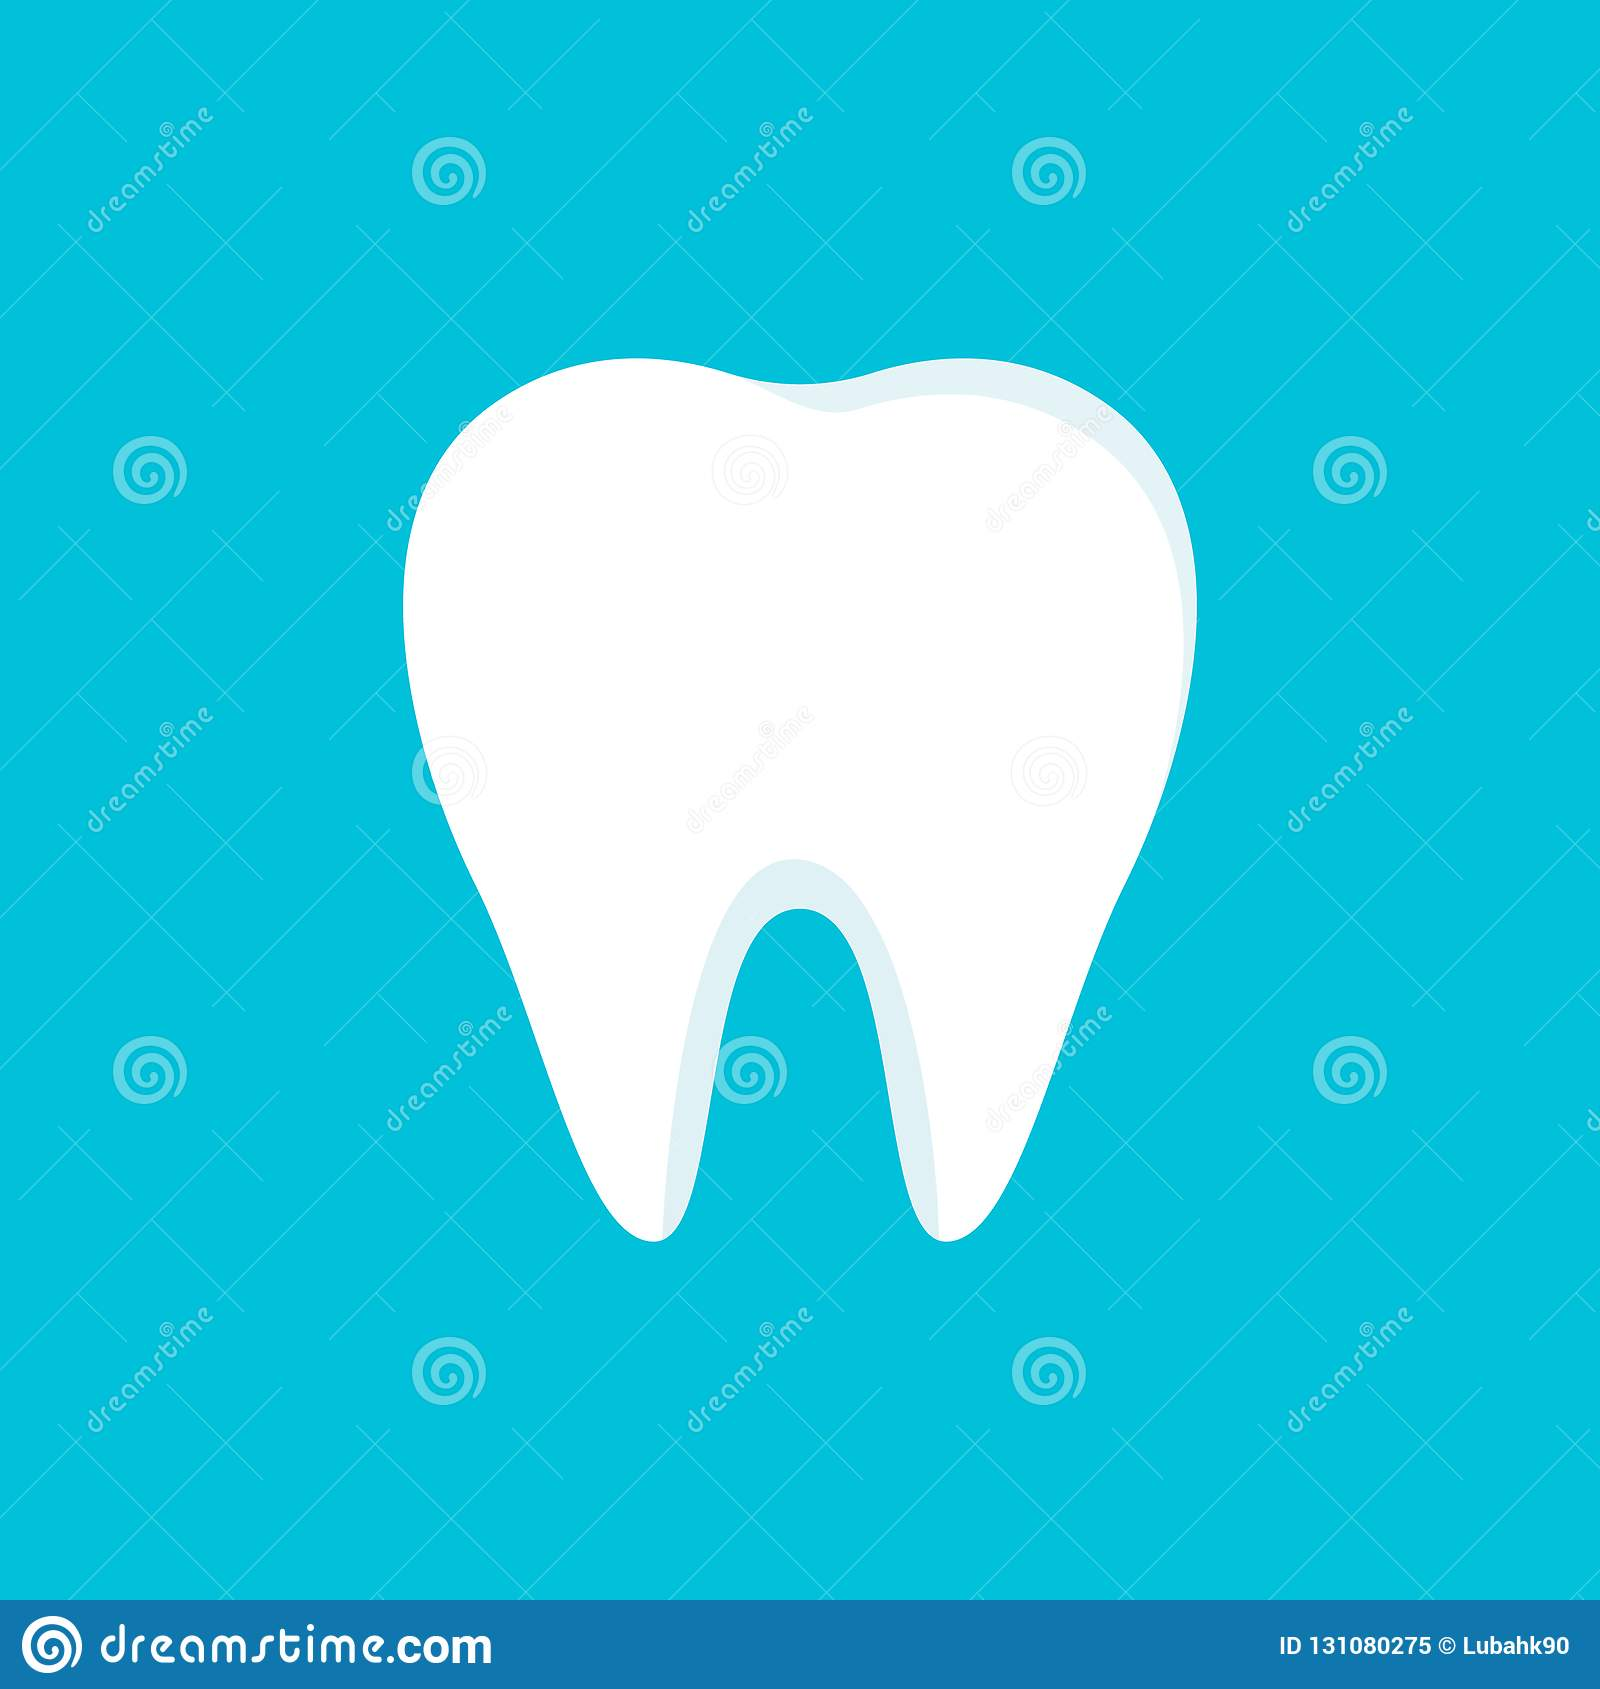 Teeth icon isolated on blue background. Clean tooth concept in flat style. Brushing teeth. Dental clinic design. Teeth symbol for